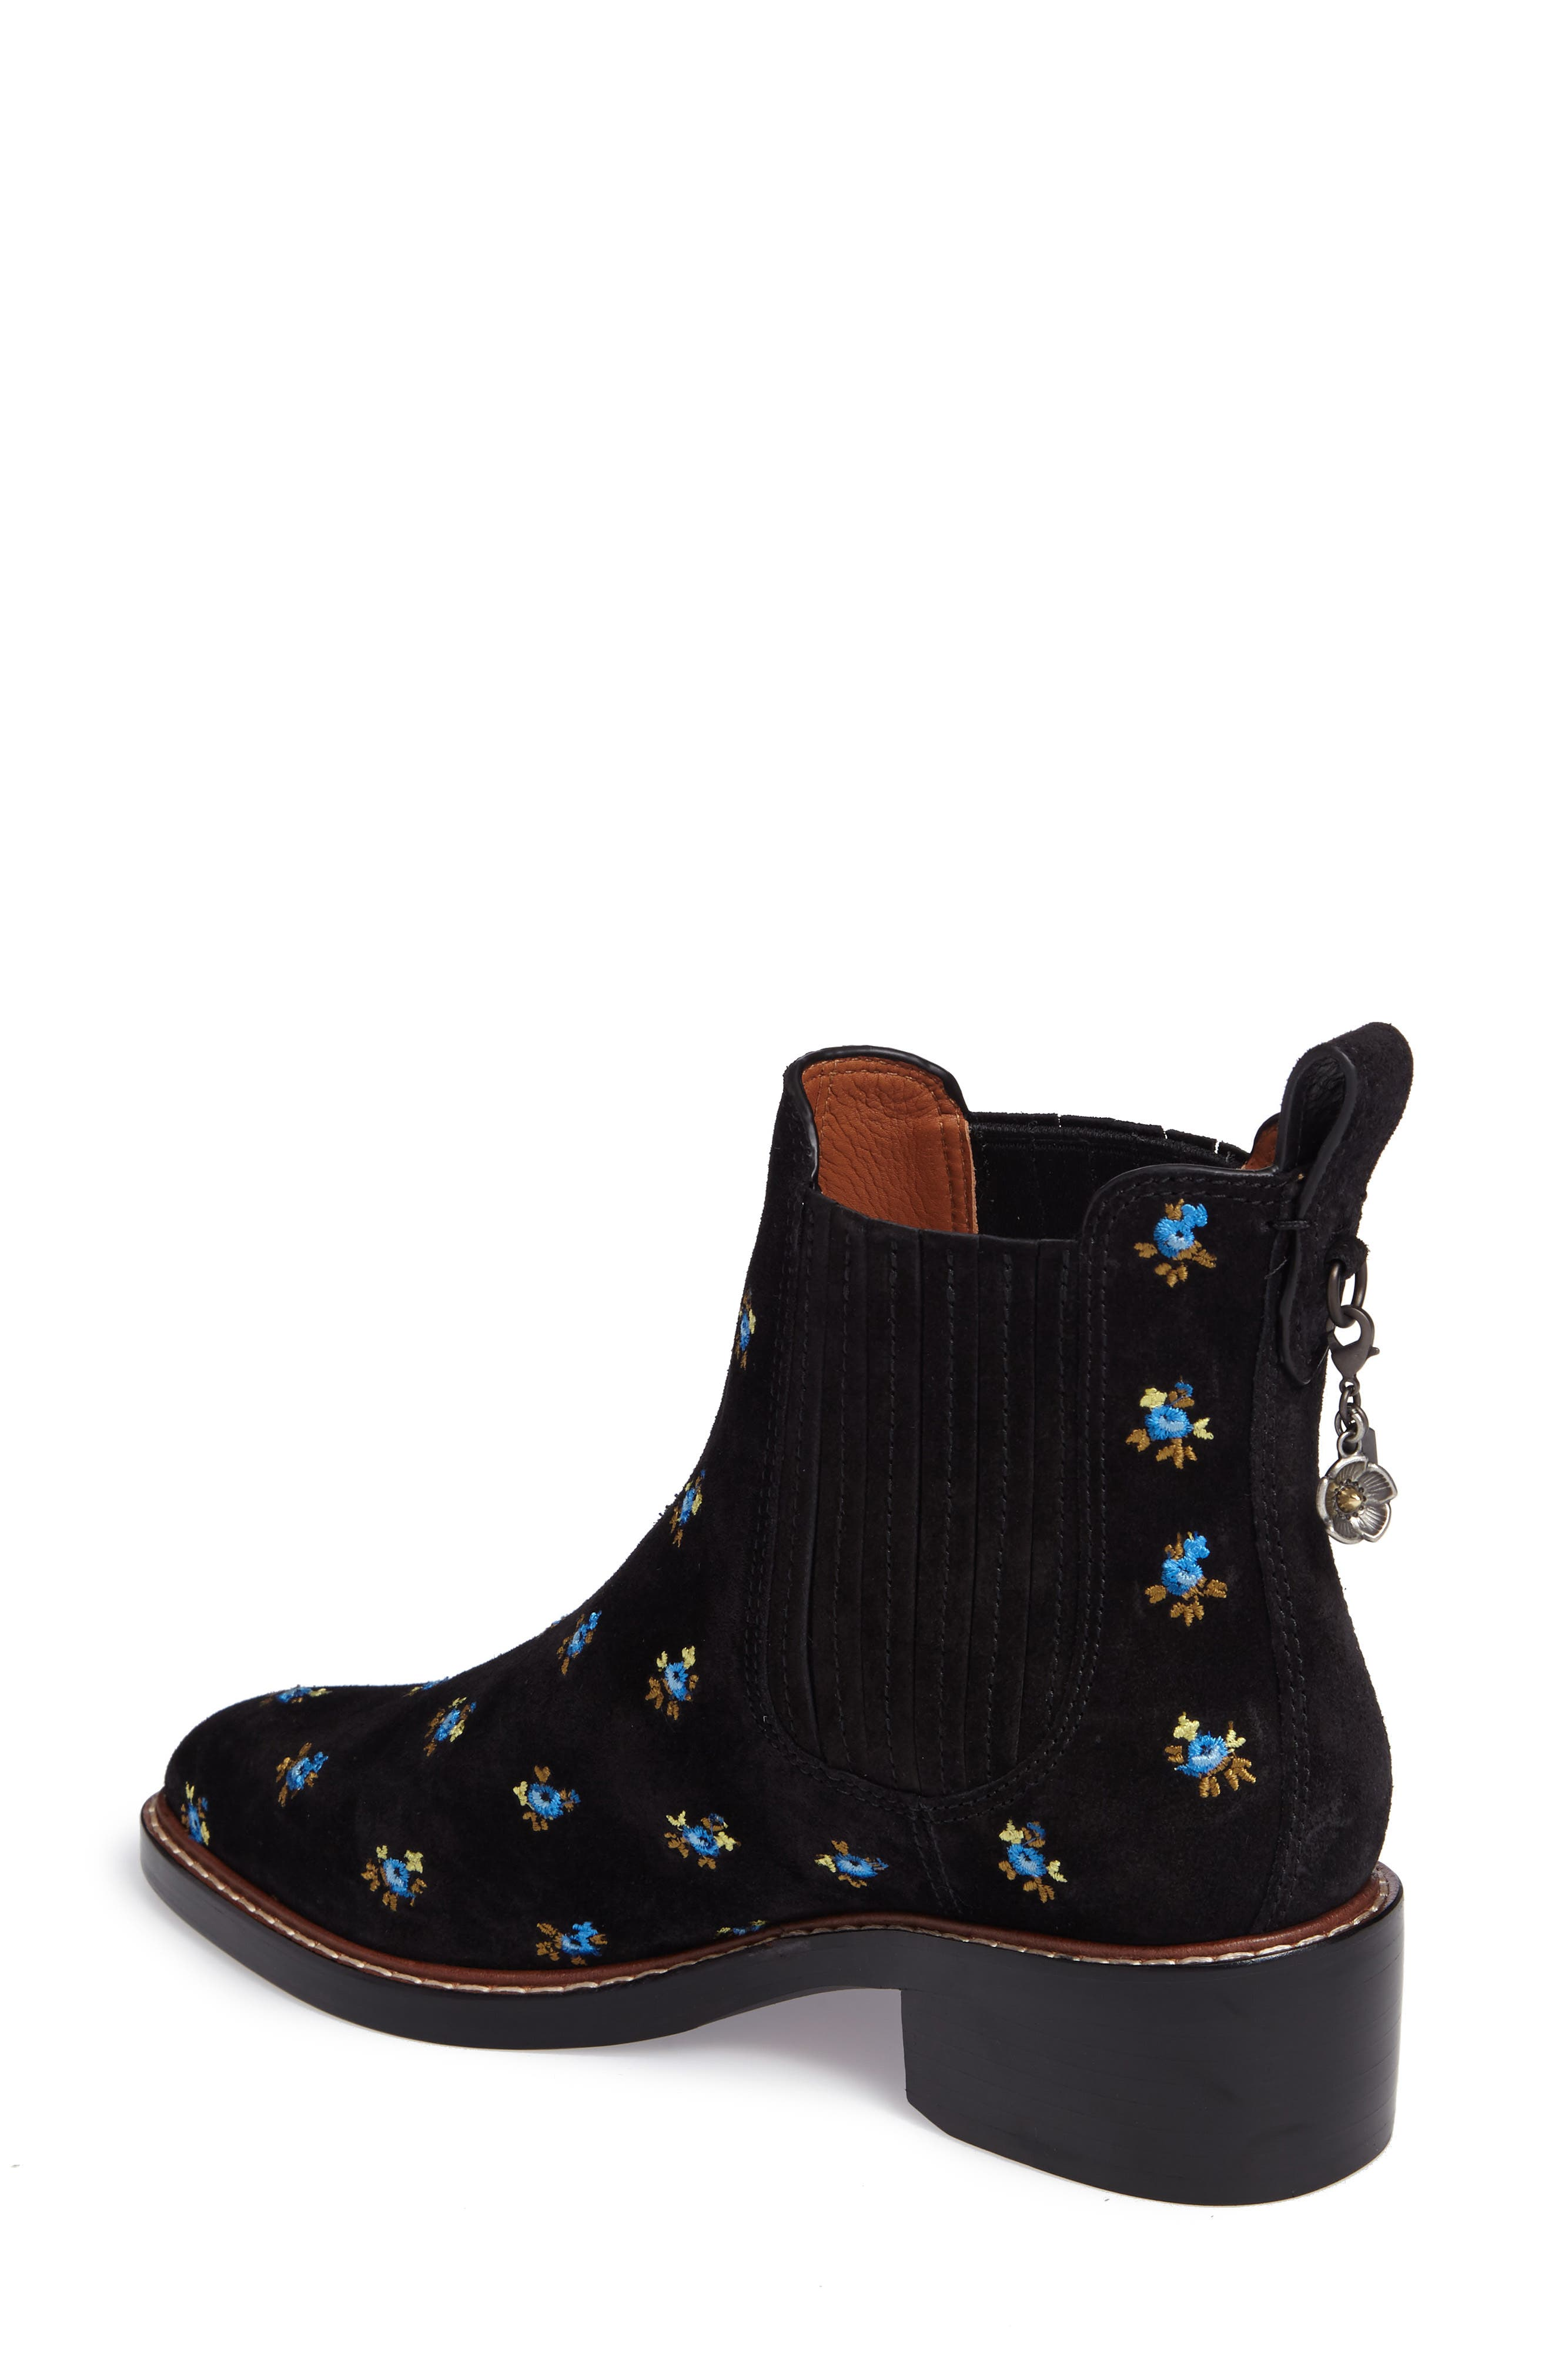 Bowery Embroidered Chelsea Bootie,                             Alternate thumbnail 4, color,